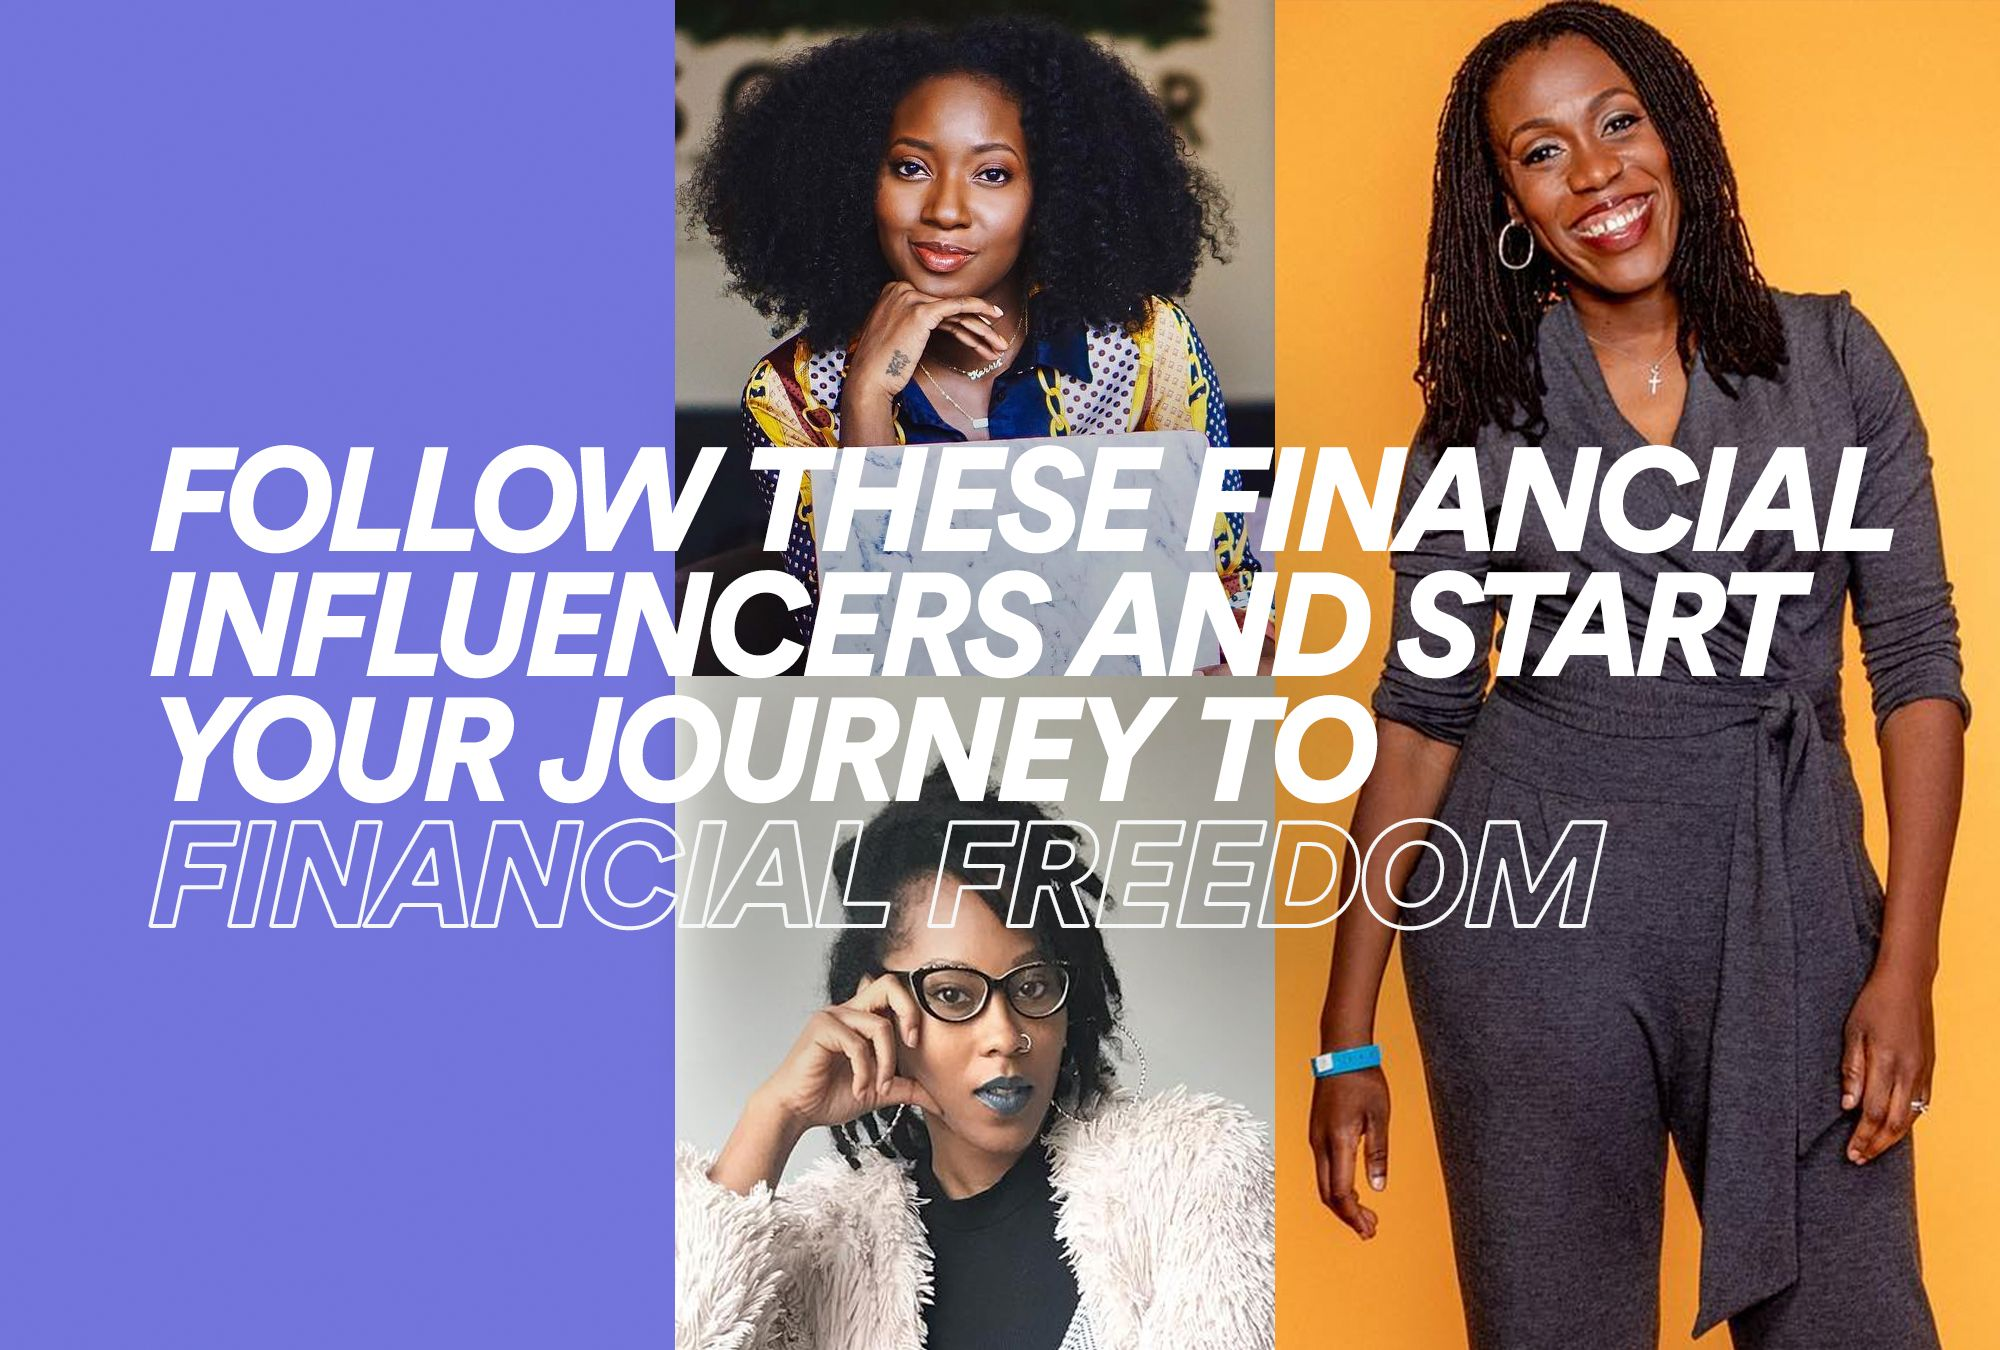 Follow These Financial Influencers and Start Your Journey to Financial Freedom